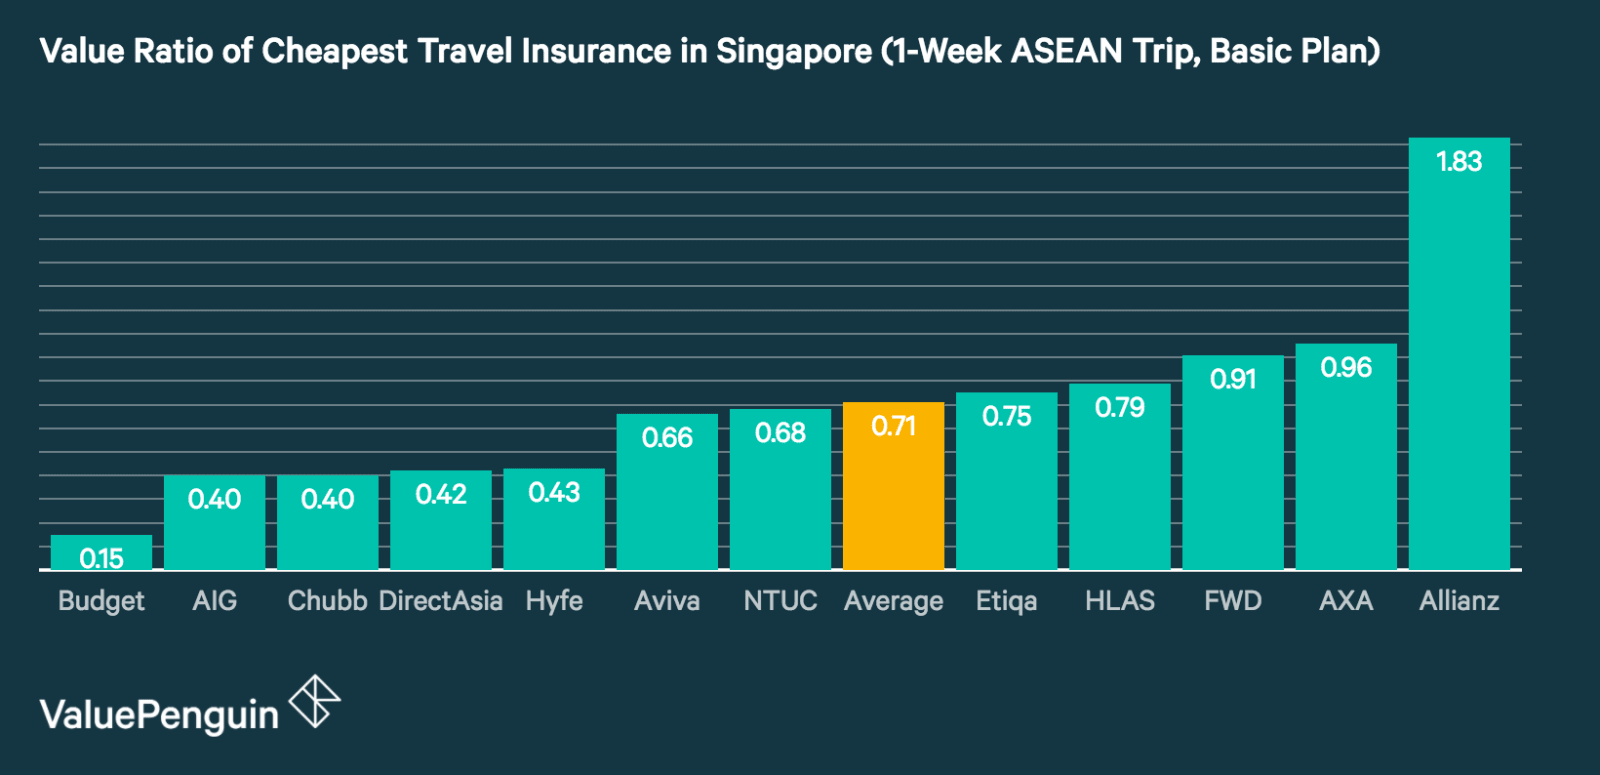 A graph comparing value of travel insurance in Singapore from all major insurers in the country, assuming a 1-week trip in ASEAN region